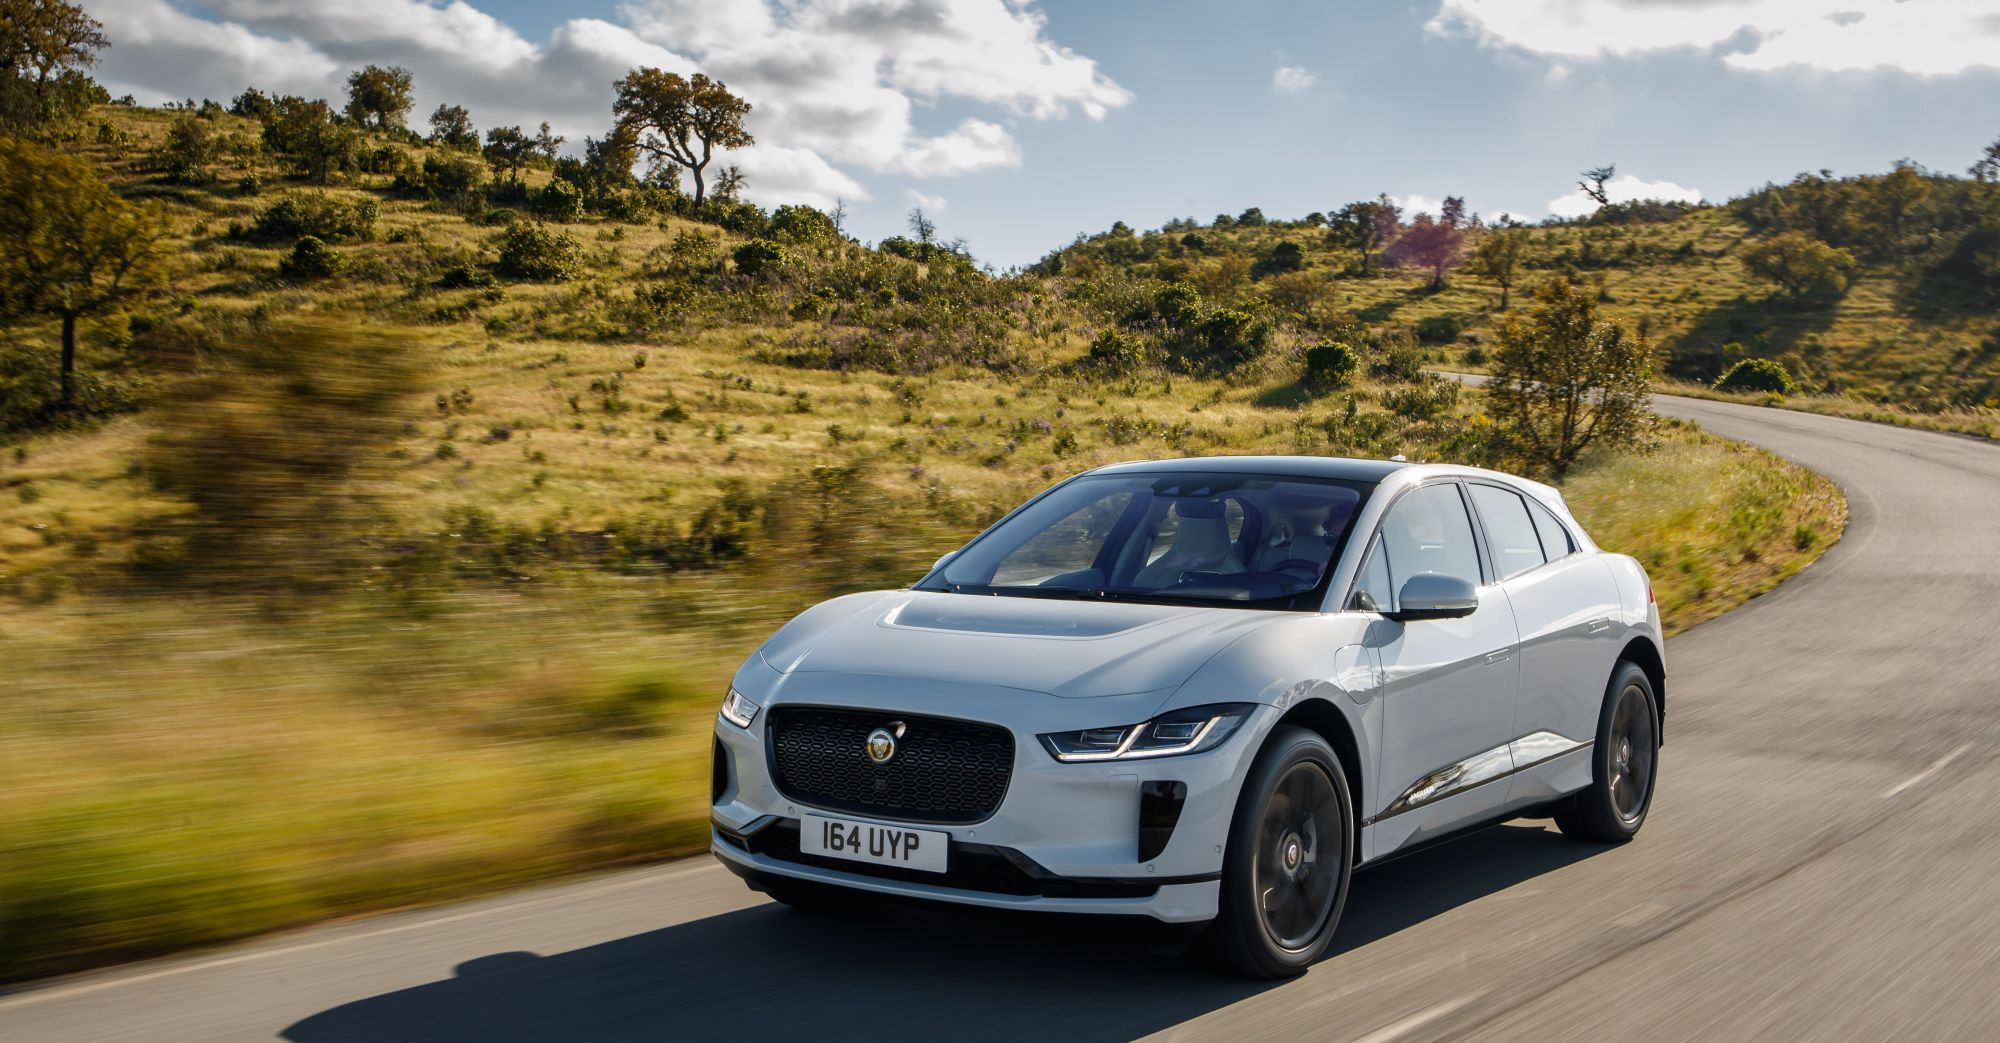 Jaguar I-Pace - kép forrása: Jaguar media site